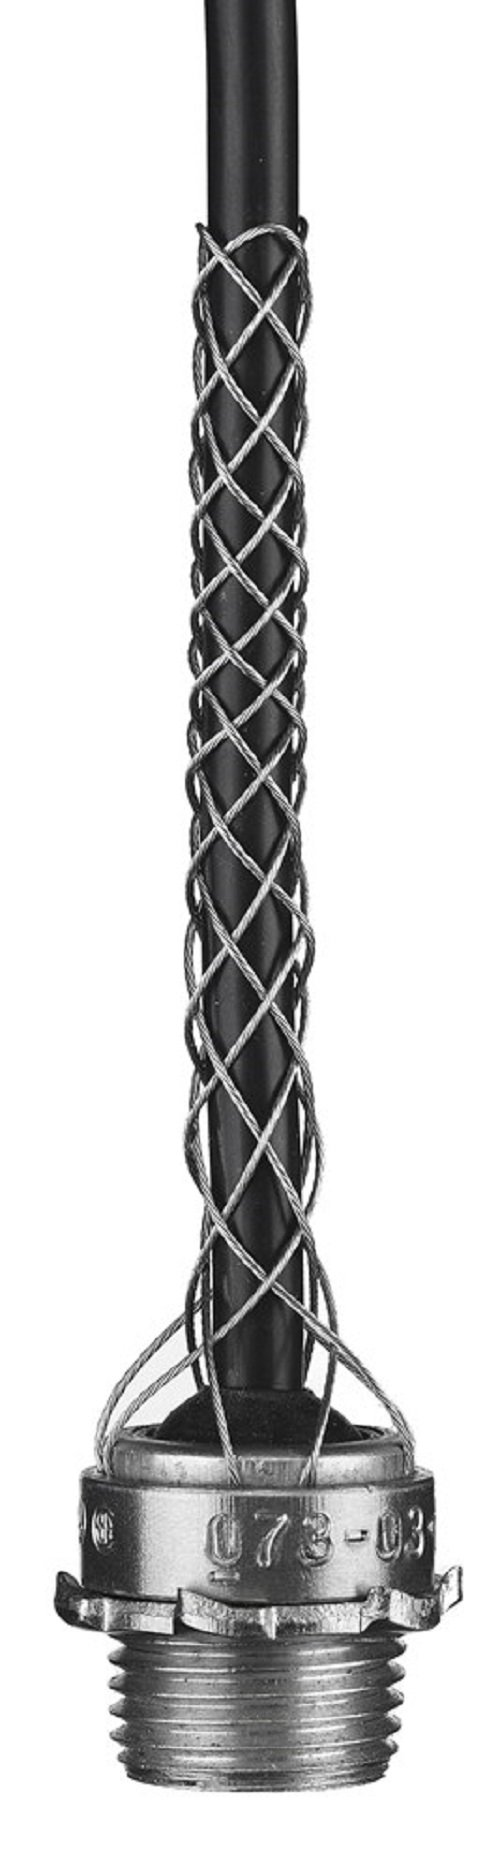 Hubbell 03313001 Steel Grip Western Electric, 0.31''-0.50'', 3/8'' Cable